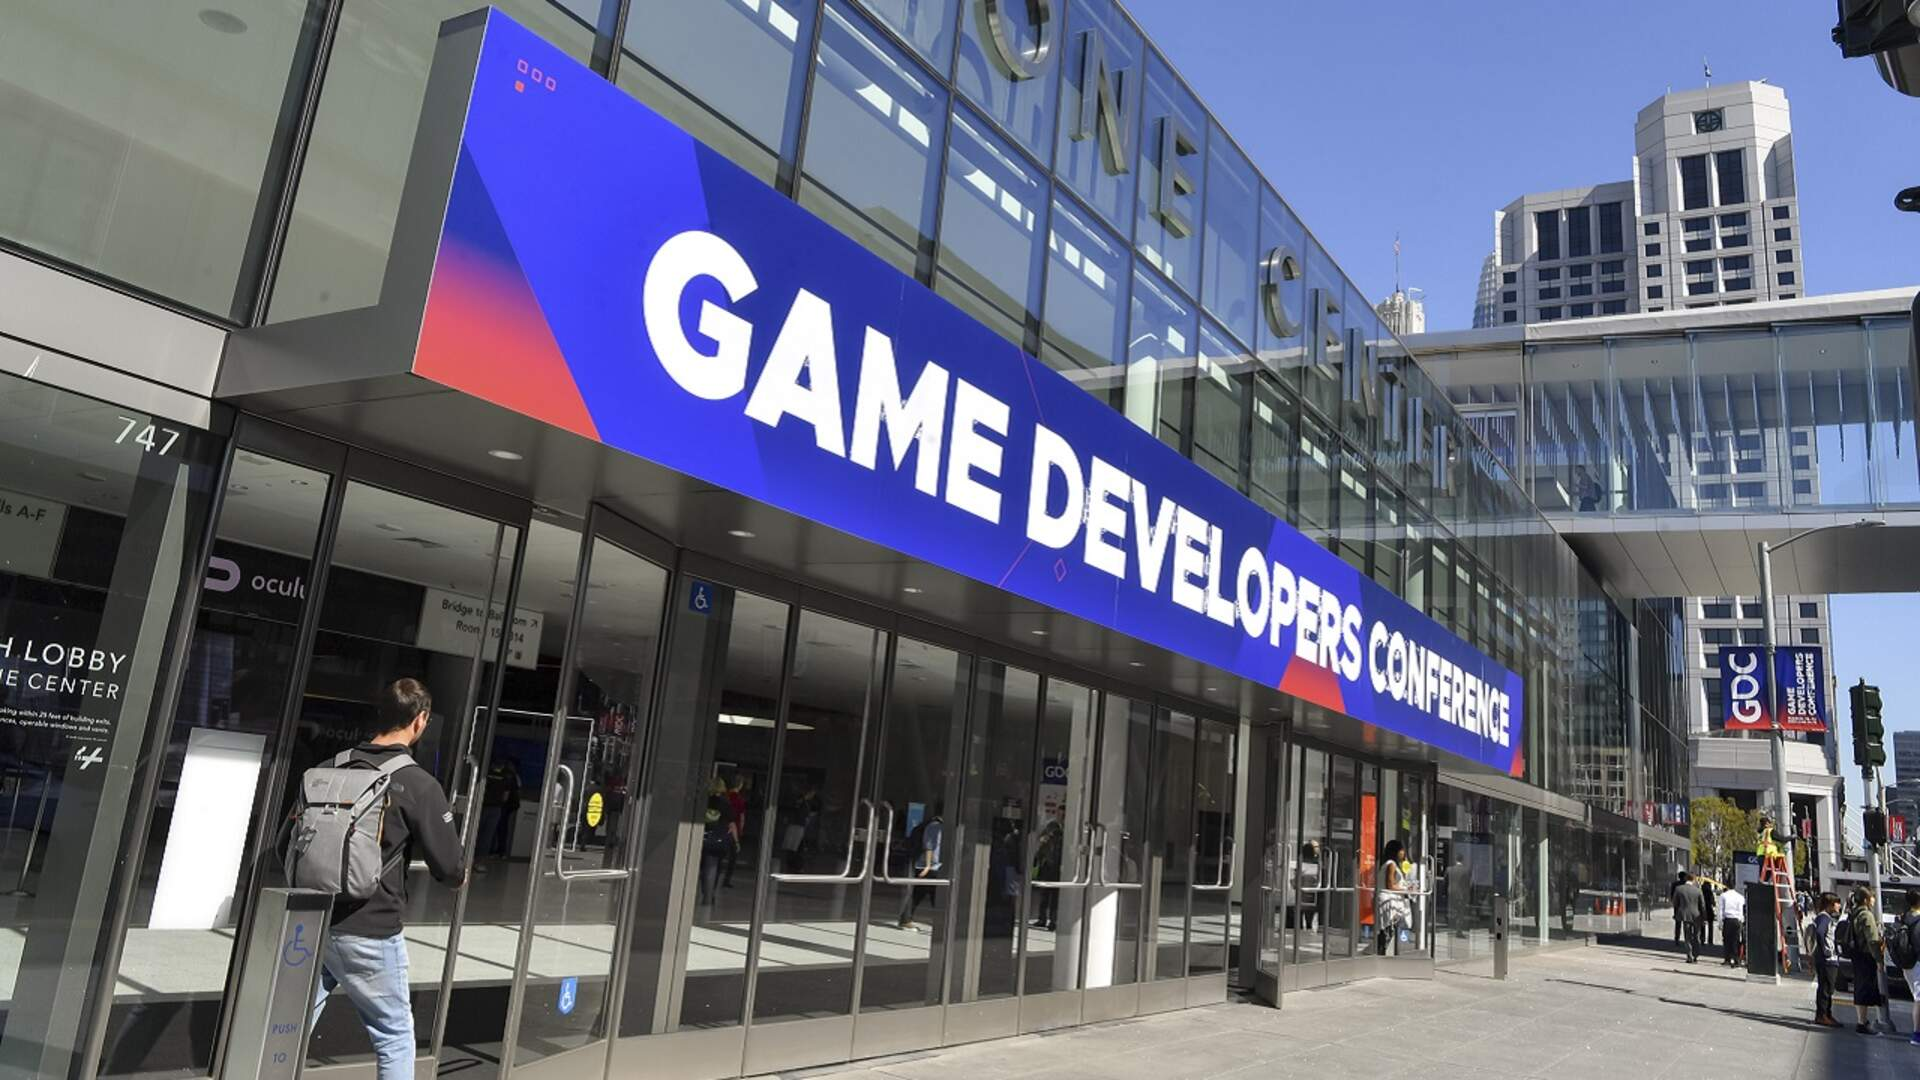 Novel Coronavirus Concerns on the Rise in Gaming